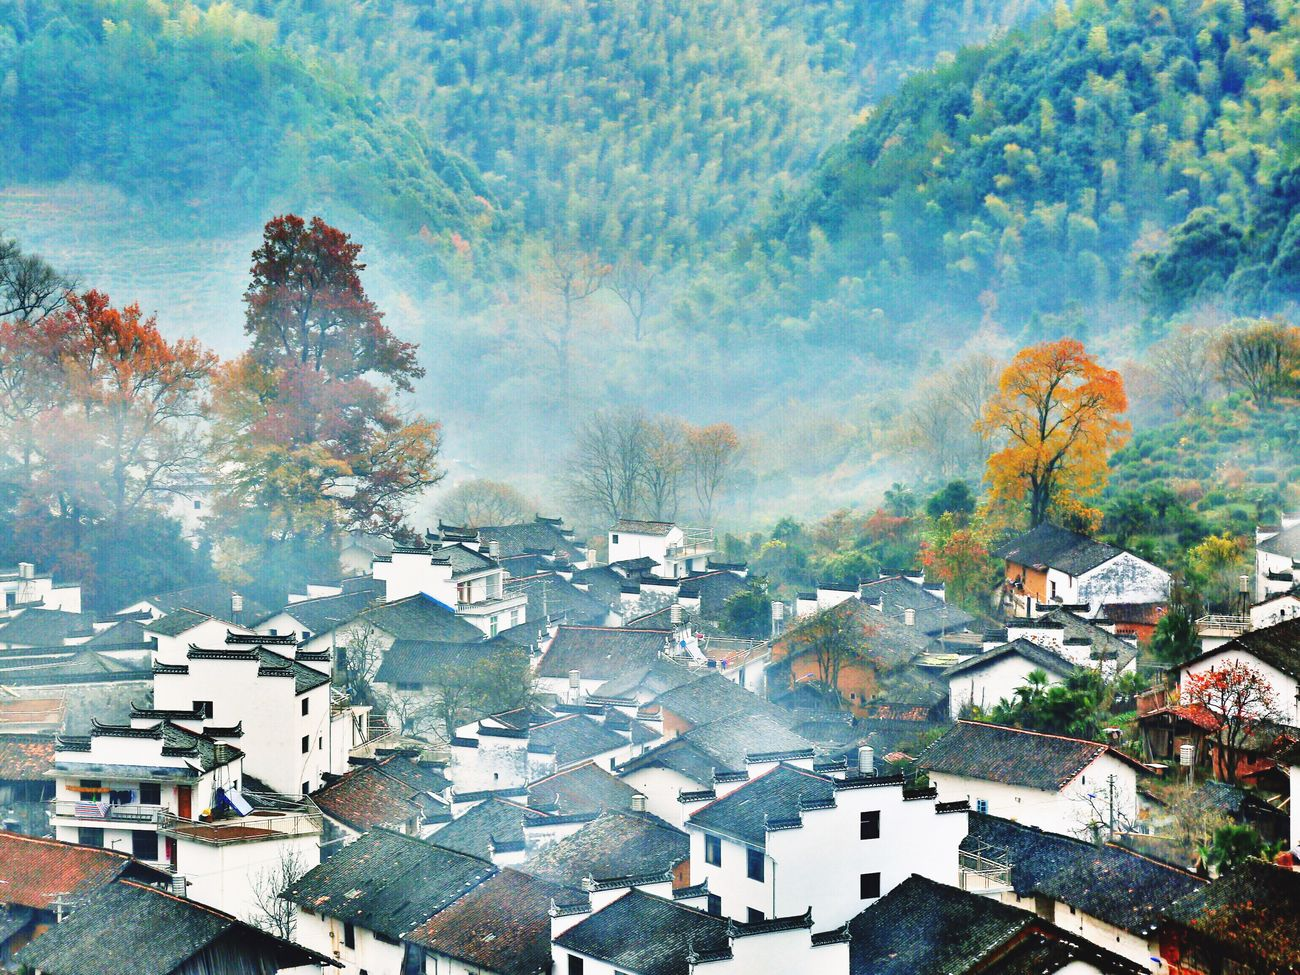 High Angle View Building Exterior Roof Community Hello World Charm China Landscape_photography Landscape_lovers Scenics Autumn🍁🍁🍁 Natural Phenomenon EyeEm Best Shots Ecology EyeEm Nature Lover Fog Eye4photography  Autumn Villages Beauty In Nature Landscapes Tranquility Mountain Nature Foggy Morning Tree